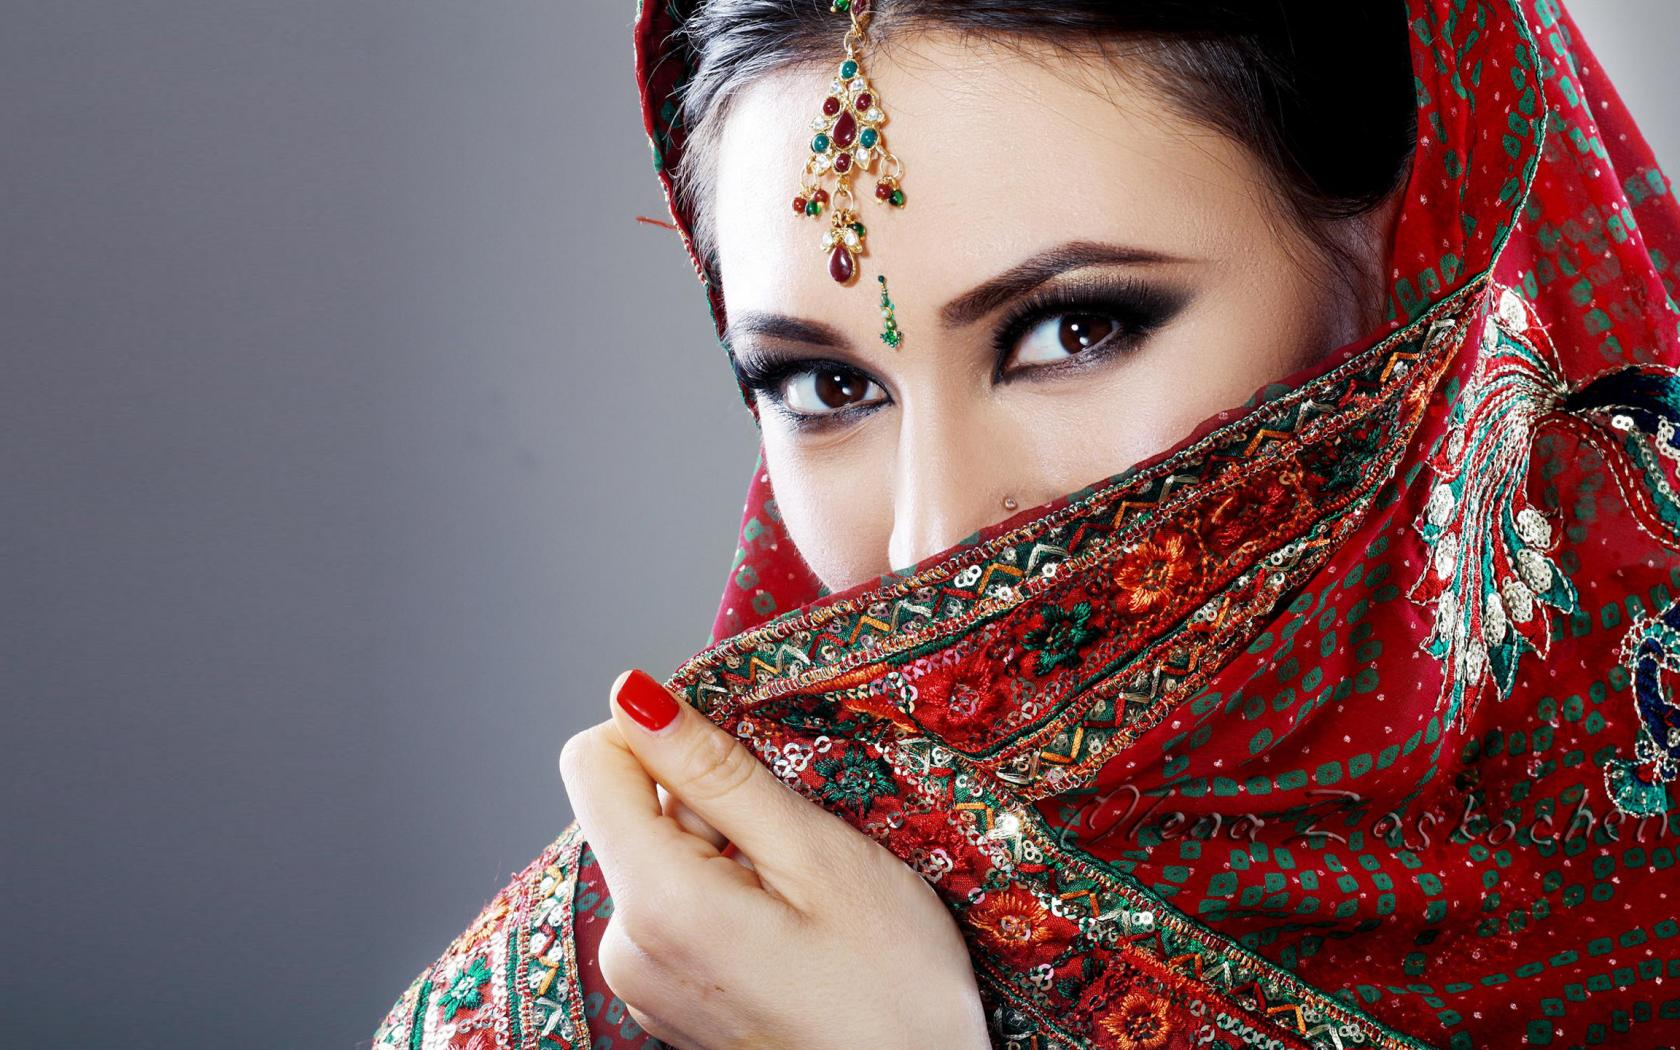 Beautiful eyes of indian girl with saree hd wallpapers wallpapers download high resolution - Indian beautiful models hd wallpapers ...